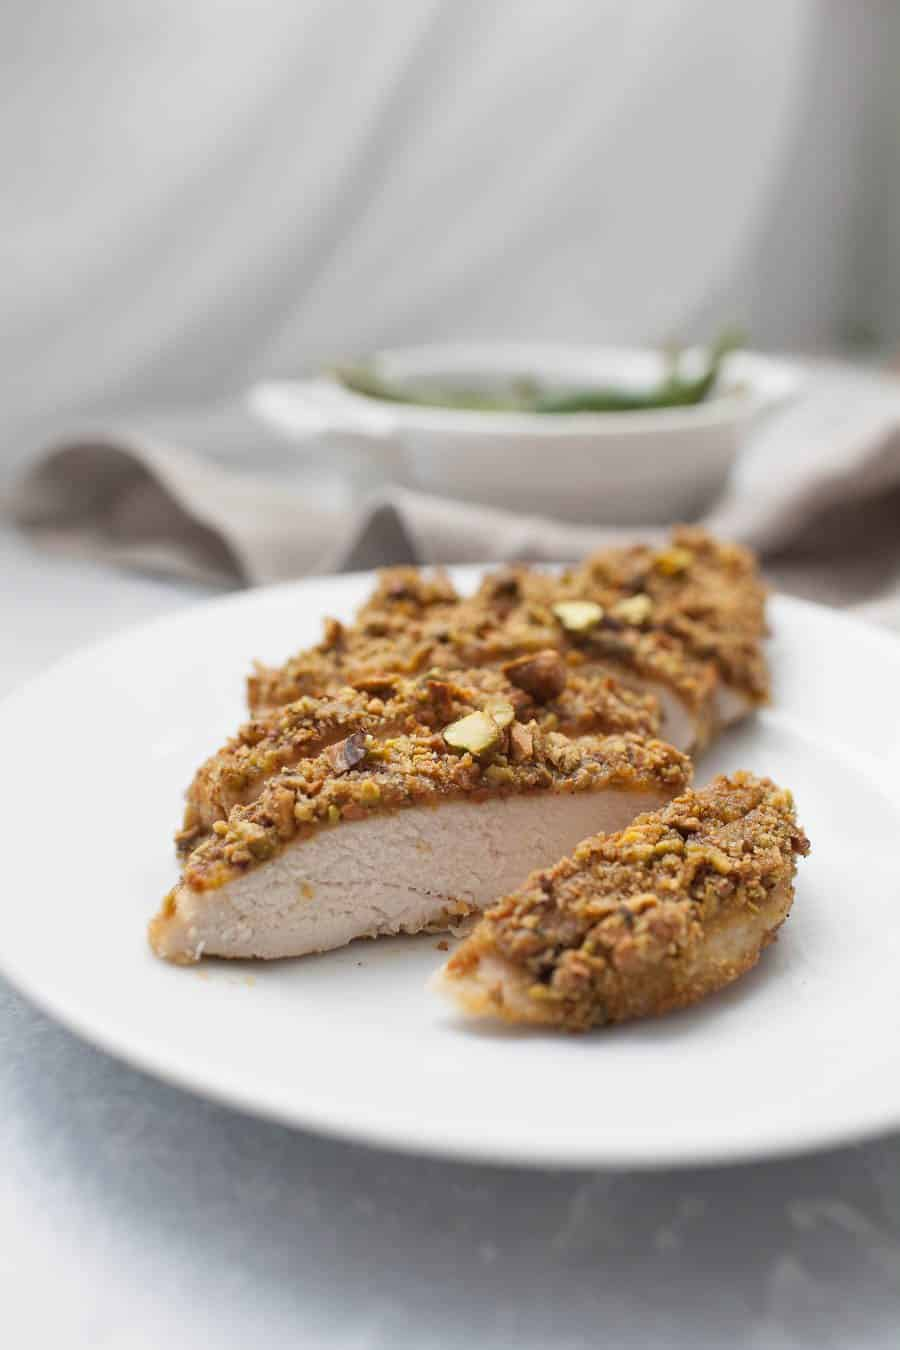 Switch up your normal dinner routine and give this pistachio dijon mustard chicken a try! You'll be surprised when your whole family can enjoy it. Even if you aren't a huge fan of pistachios or mustard usually (I wasn't either), I bet you'll like this combination! This fancy breaded chicken is baked in the oven so you can focus on the other parts of your dinner while it bakes.